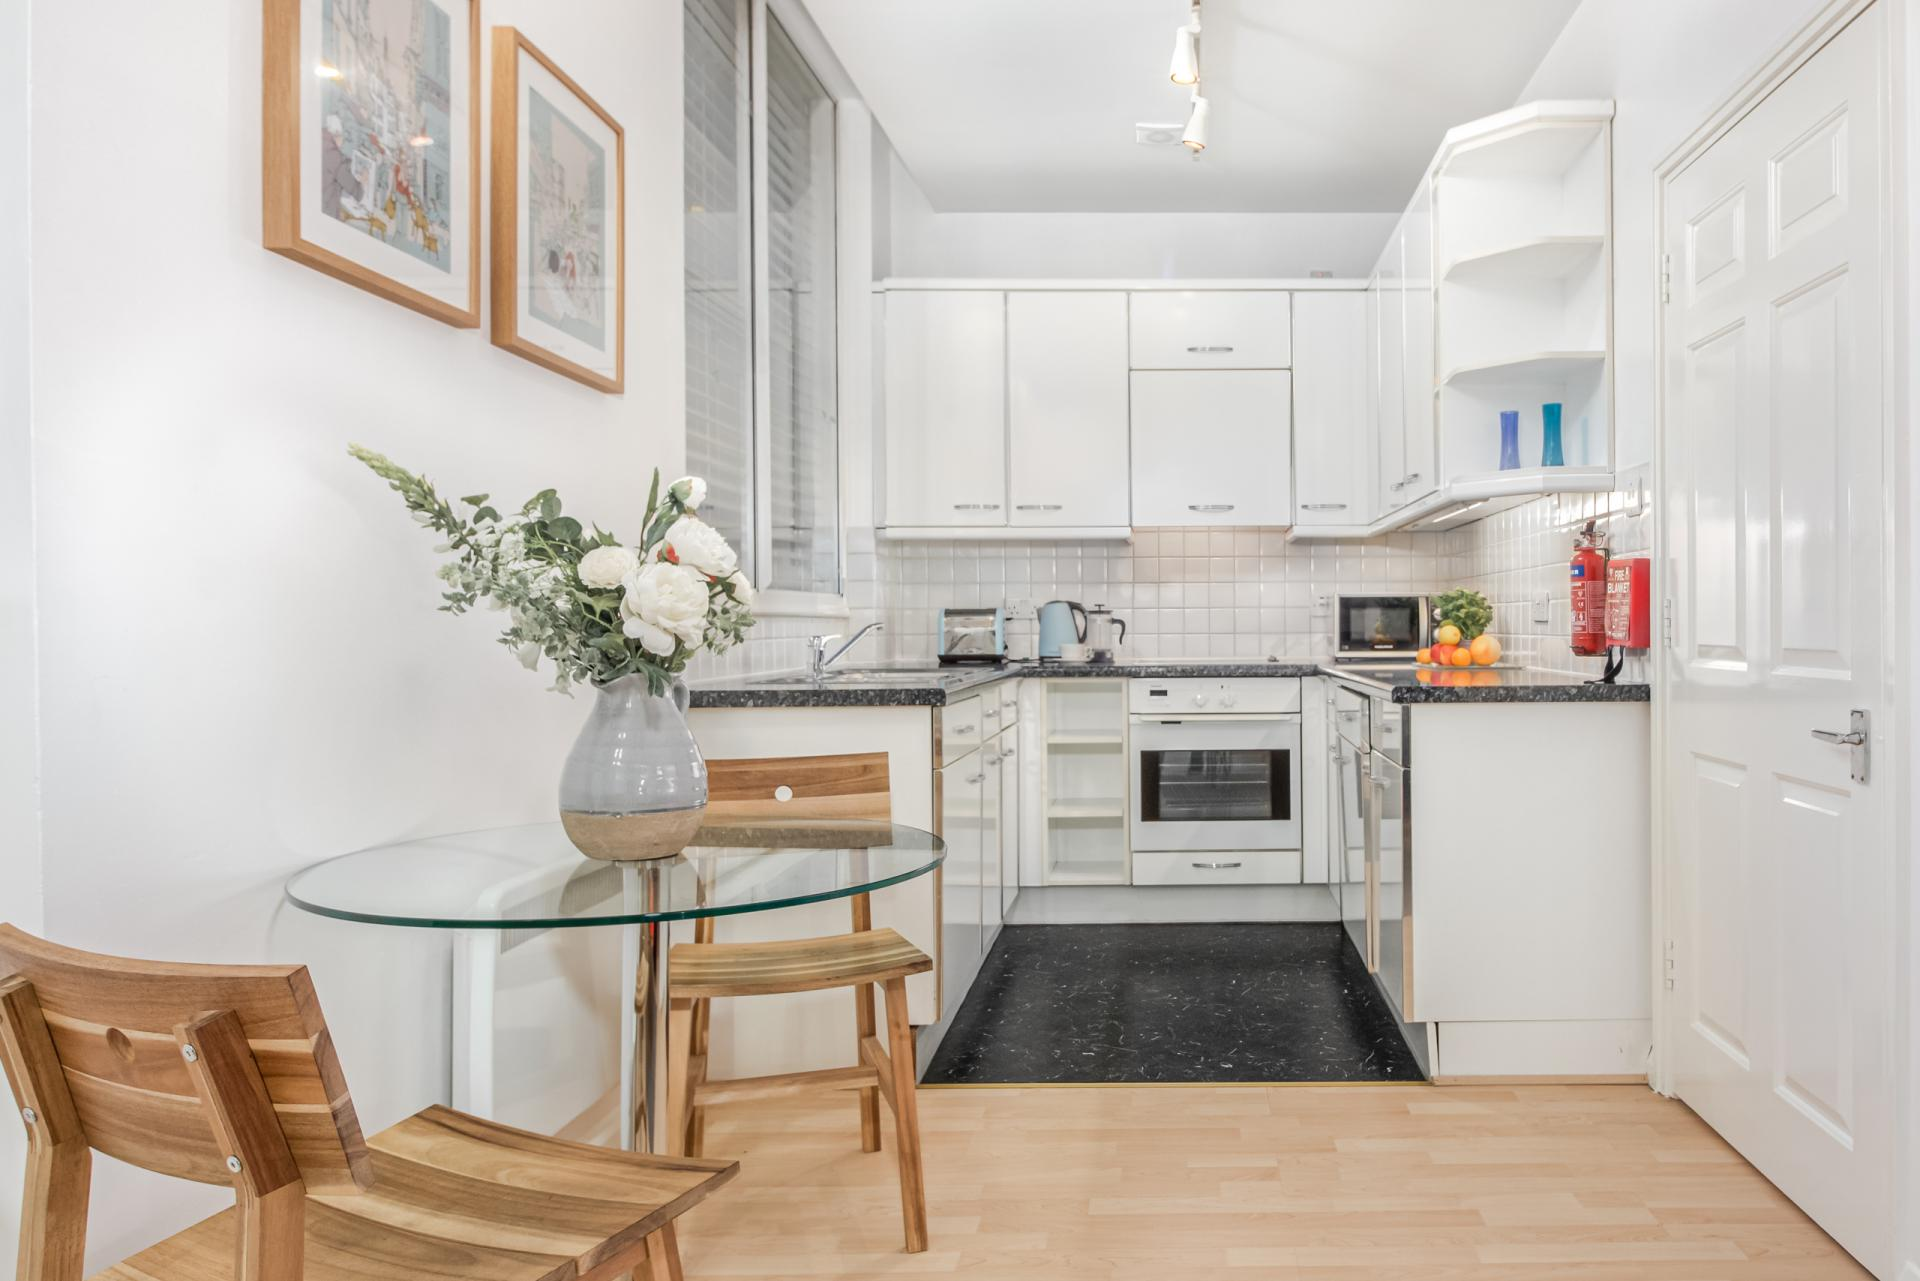 Kitchen at Priory House Apartments, City, London